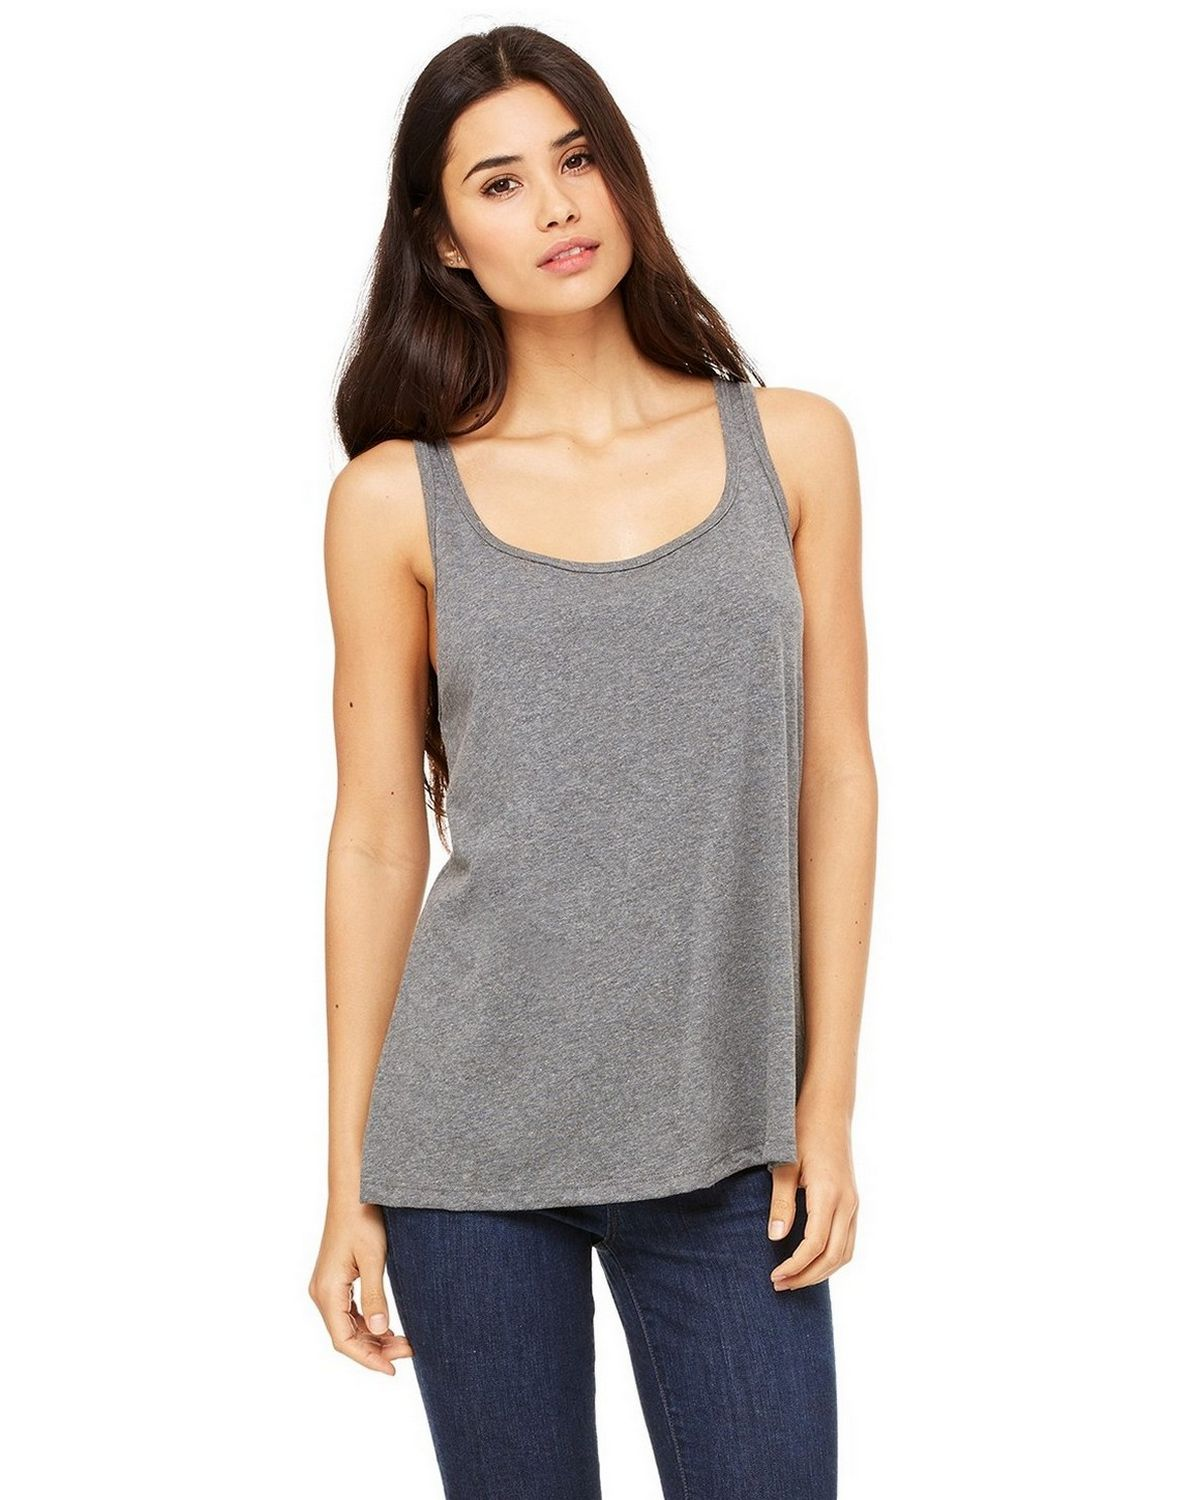 Bella + Canvas 6488 Ladies Jersey Tank - Deep Heather - S 6488